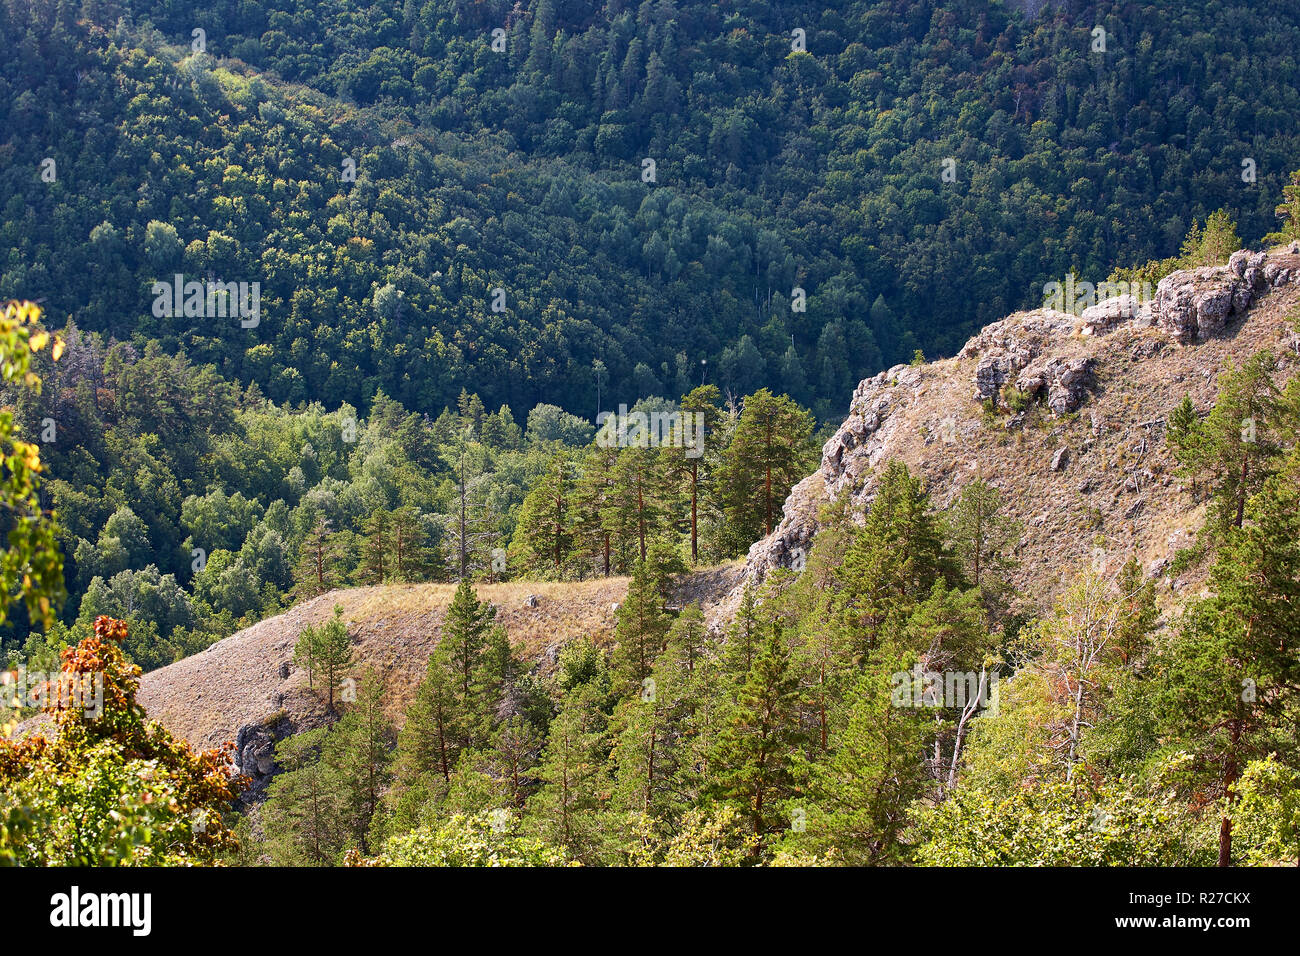 Thick green wood on the hillside. Forest conservation area. Natural Park. - Stock Image